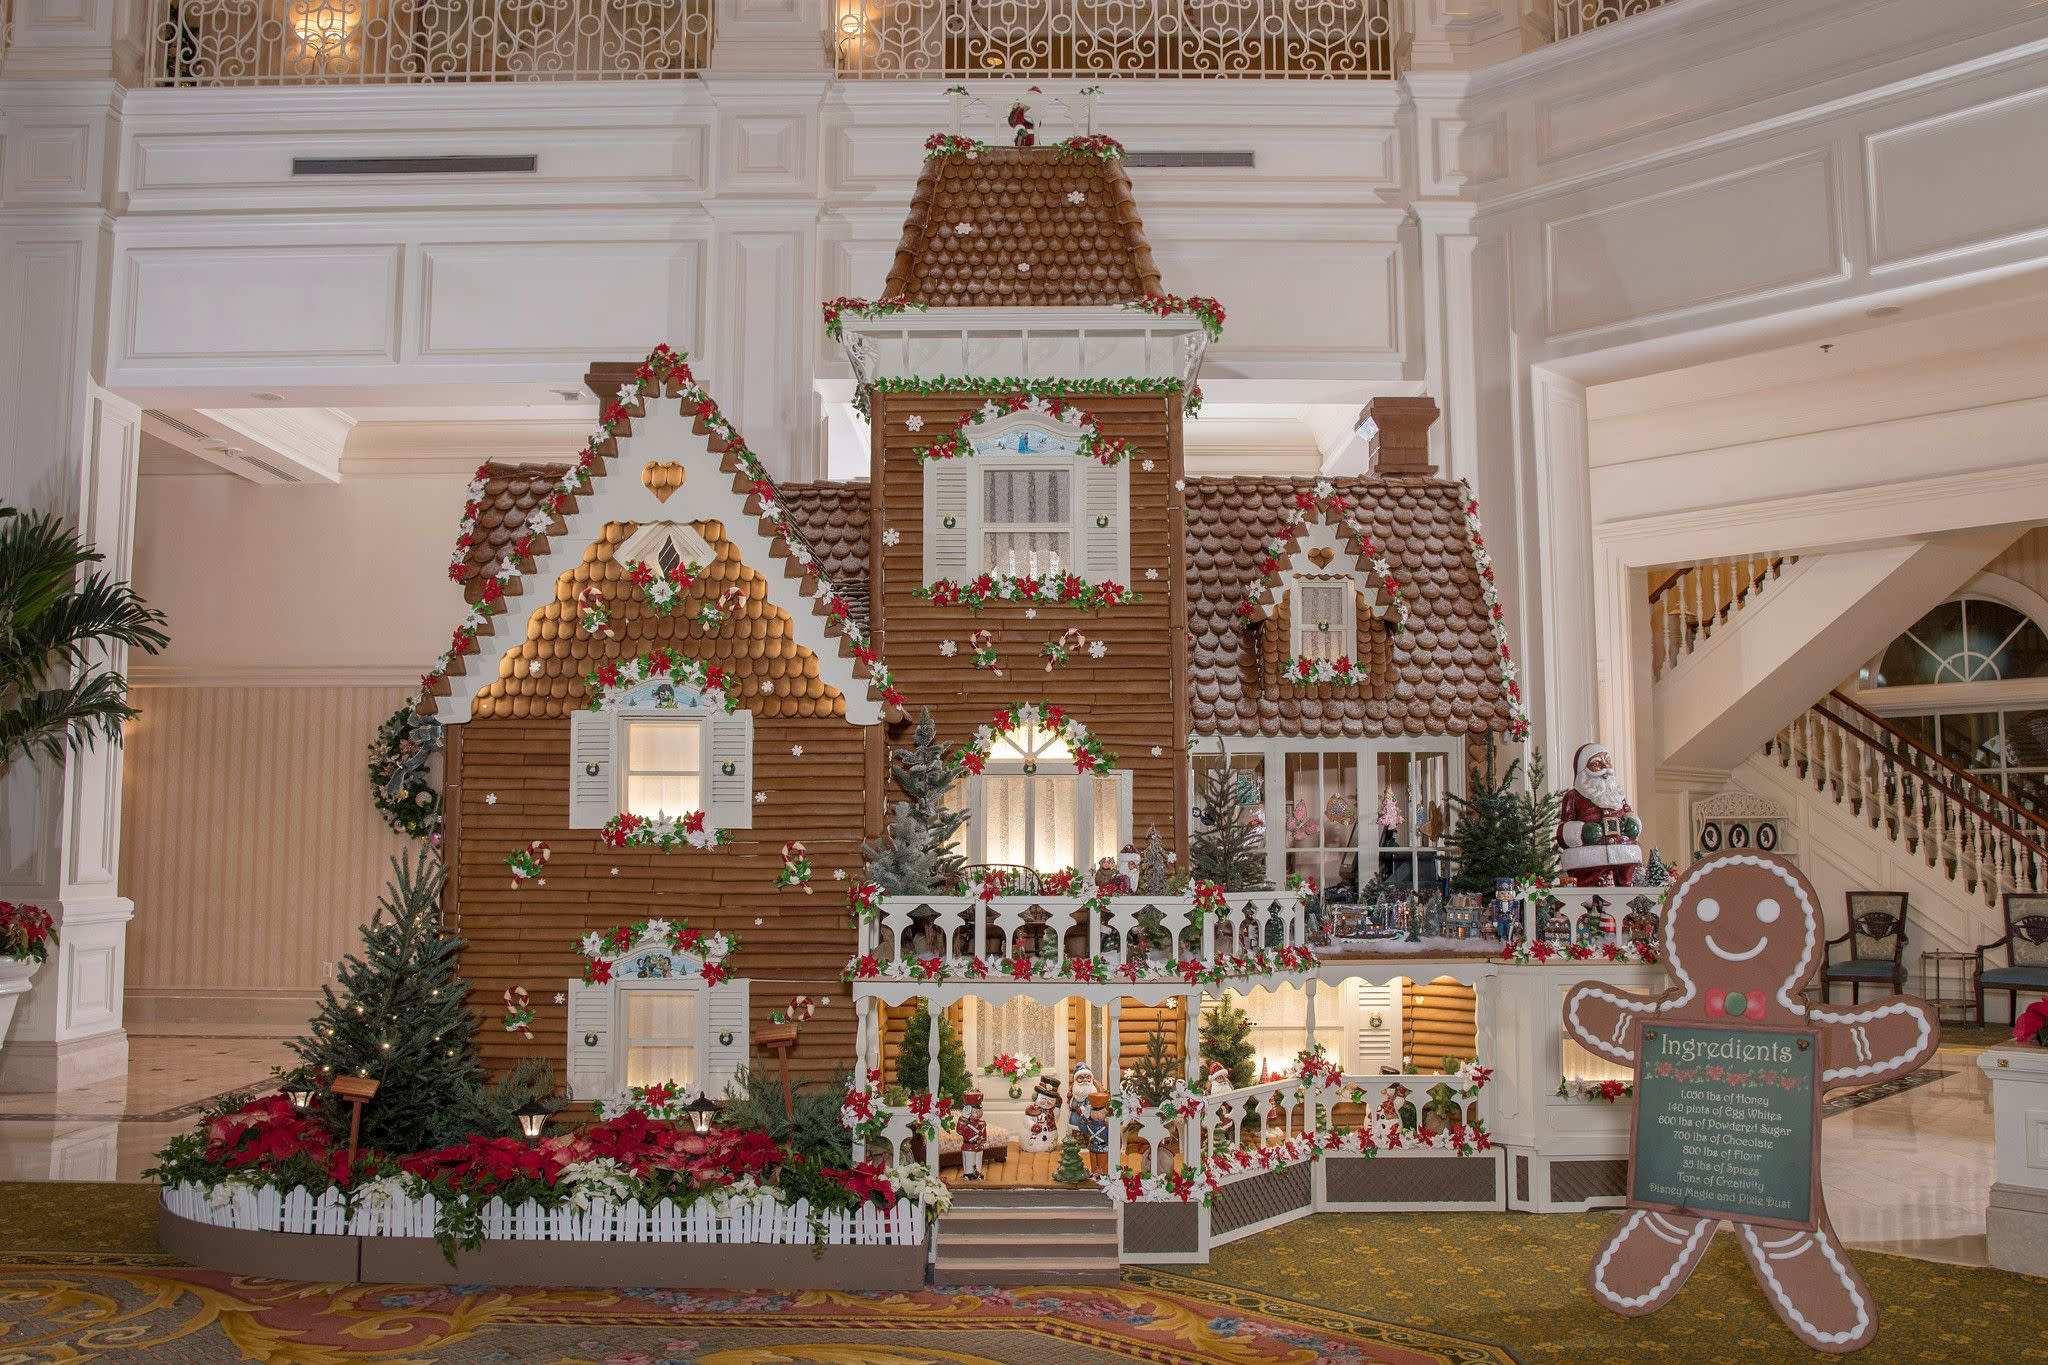 Gingerbread House at Disney's Grand Floridian Resort & Spa at Walt Disney World Resort in Orlando